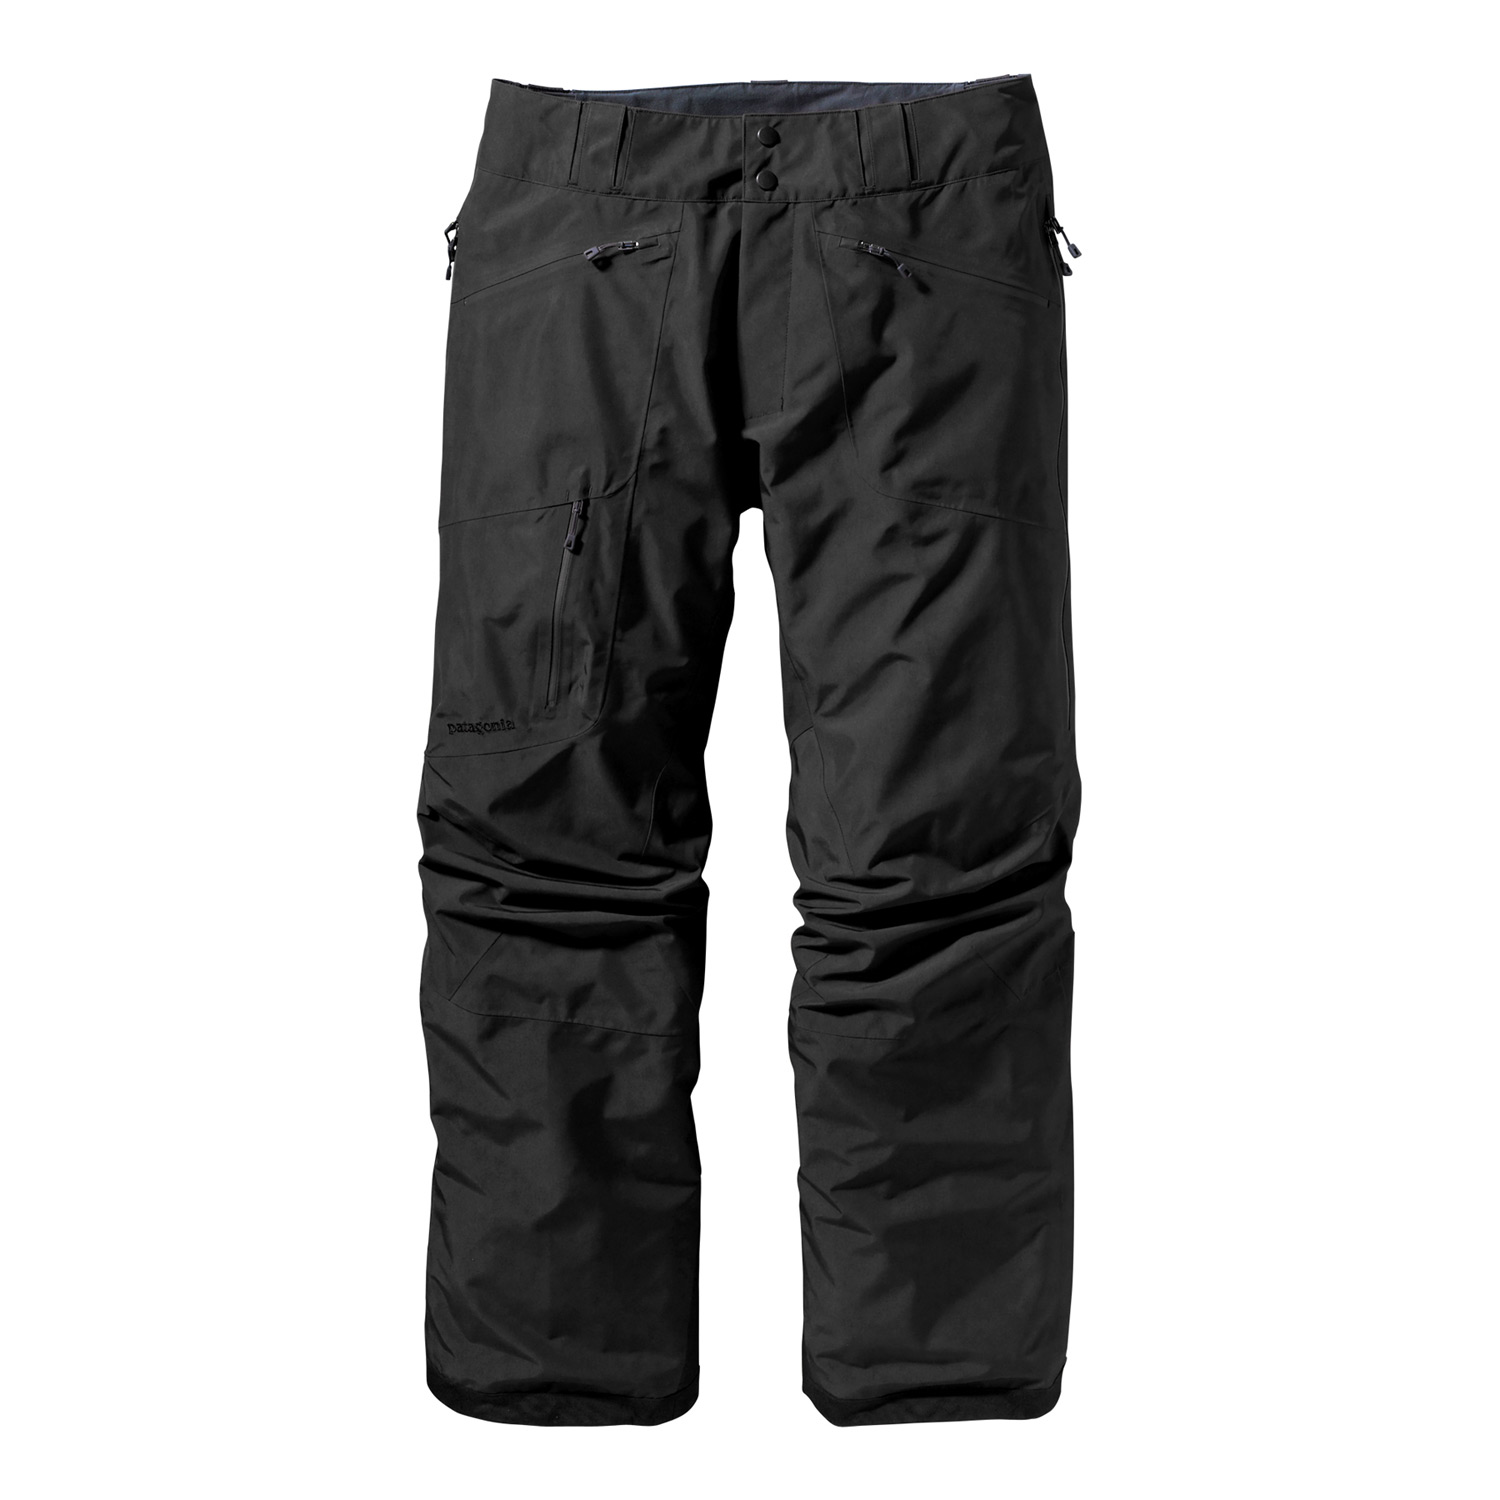 Ski Let Patagonia Powder Bowl Pants complete your backcountry ensemble. The shell pants, engineered GORE-TEX Performance Shell uses the most durable nylon face fabrics available. The 2-layer construction uses a GORE-TEX membrane, which is bonded to the outer material and protected on the inside by a separate lining for better wear, greater comfort, and waterproof/breathable protectionKey Features of the Patagonia Powder Bowl Ski Pants: Durable 2-layer polyester shell with waterproof/breathable GORE-TEX Performance Shell and a Deluge DWR (durable water repellent) finish, keeps you dry during a heavy snowstorm; combination of a brushed and slick mesh lining keeps you warm and wicks away moisture Waist details: Soft brushed tricot lining wicks moisture; adjustable elastic tabs customize the fit; two-snap closure and zip fly Loops on rear yoke securely attach pant to powder skirt on any Patagonia Ski/Snowboard Jacket to keep snow out Slim Zip installation with watertight coated zippers for reduced zipper bulk and weight Gusseted crotch and articulated knees improve mobility and reduce bulk; external thigh vents quickly release heat Gaiters keep the snow out, while tough scuff guards protect inside of leg and bottom hem Pockets: Two handwarmers, one back hip, one right thigh - all with secure zip closures Regular fit (27.8 oz) 788 g Fabric: Shell: 2-layer, 4.3-oz 150-denier 100% polyester with waterproof/breathable GORE-TEX Performance Shell and a Deluge DWR finish. Lining: Seat, upper thighs: 100% brushed polyester mesh; legs: 100% polyester mesh - $223.95